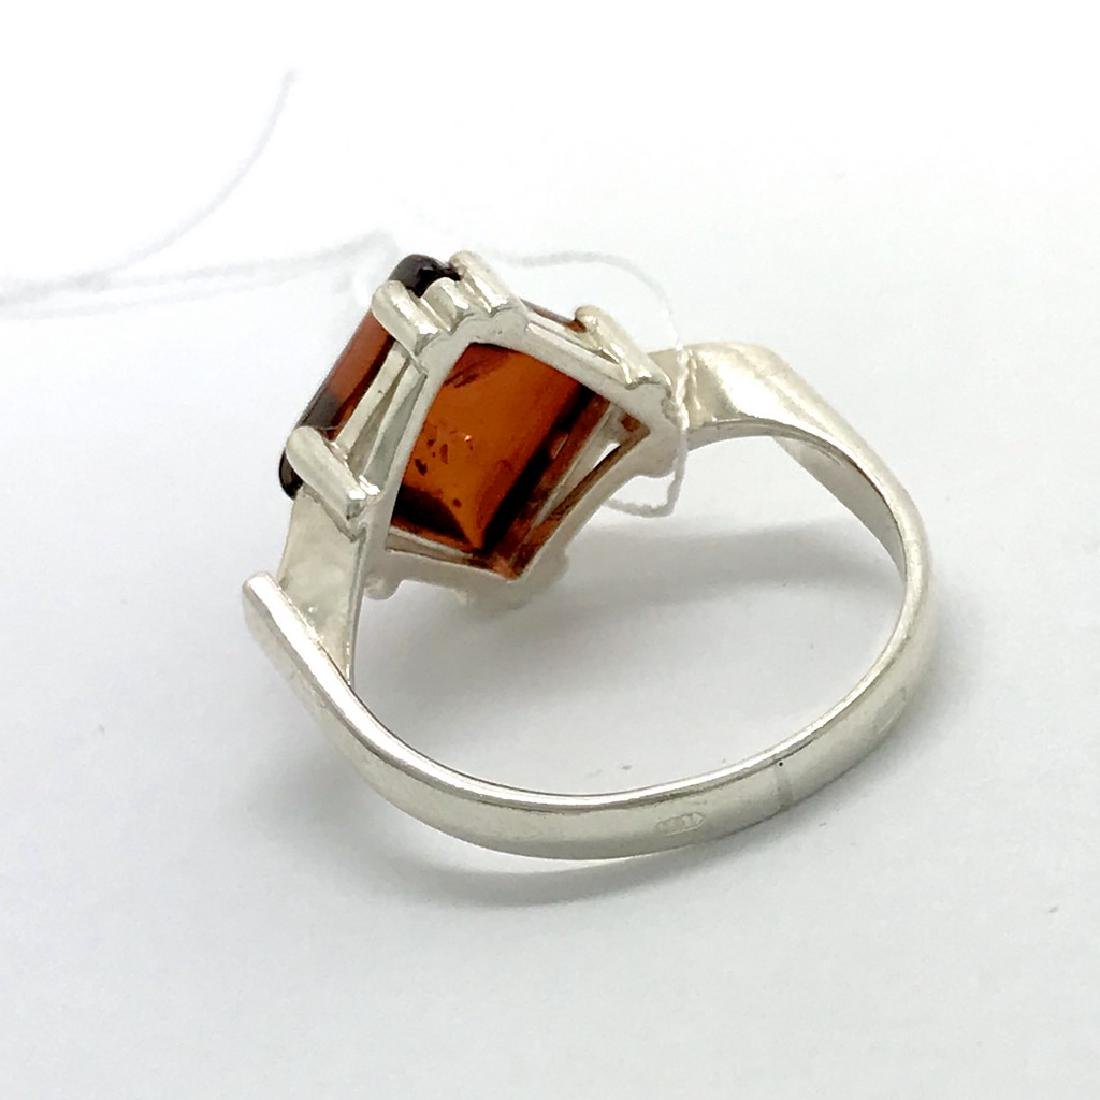 Ring Baltic amber in sterling silver - 3